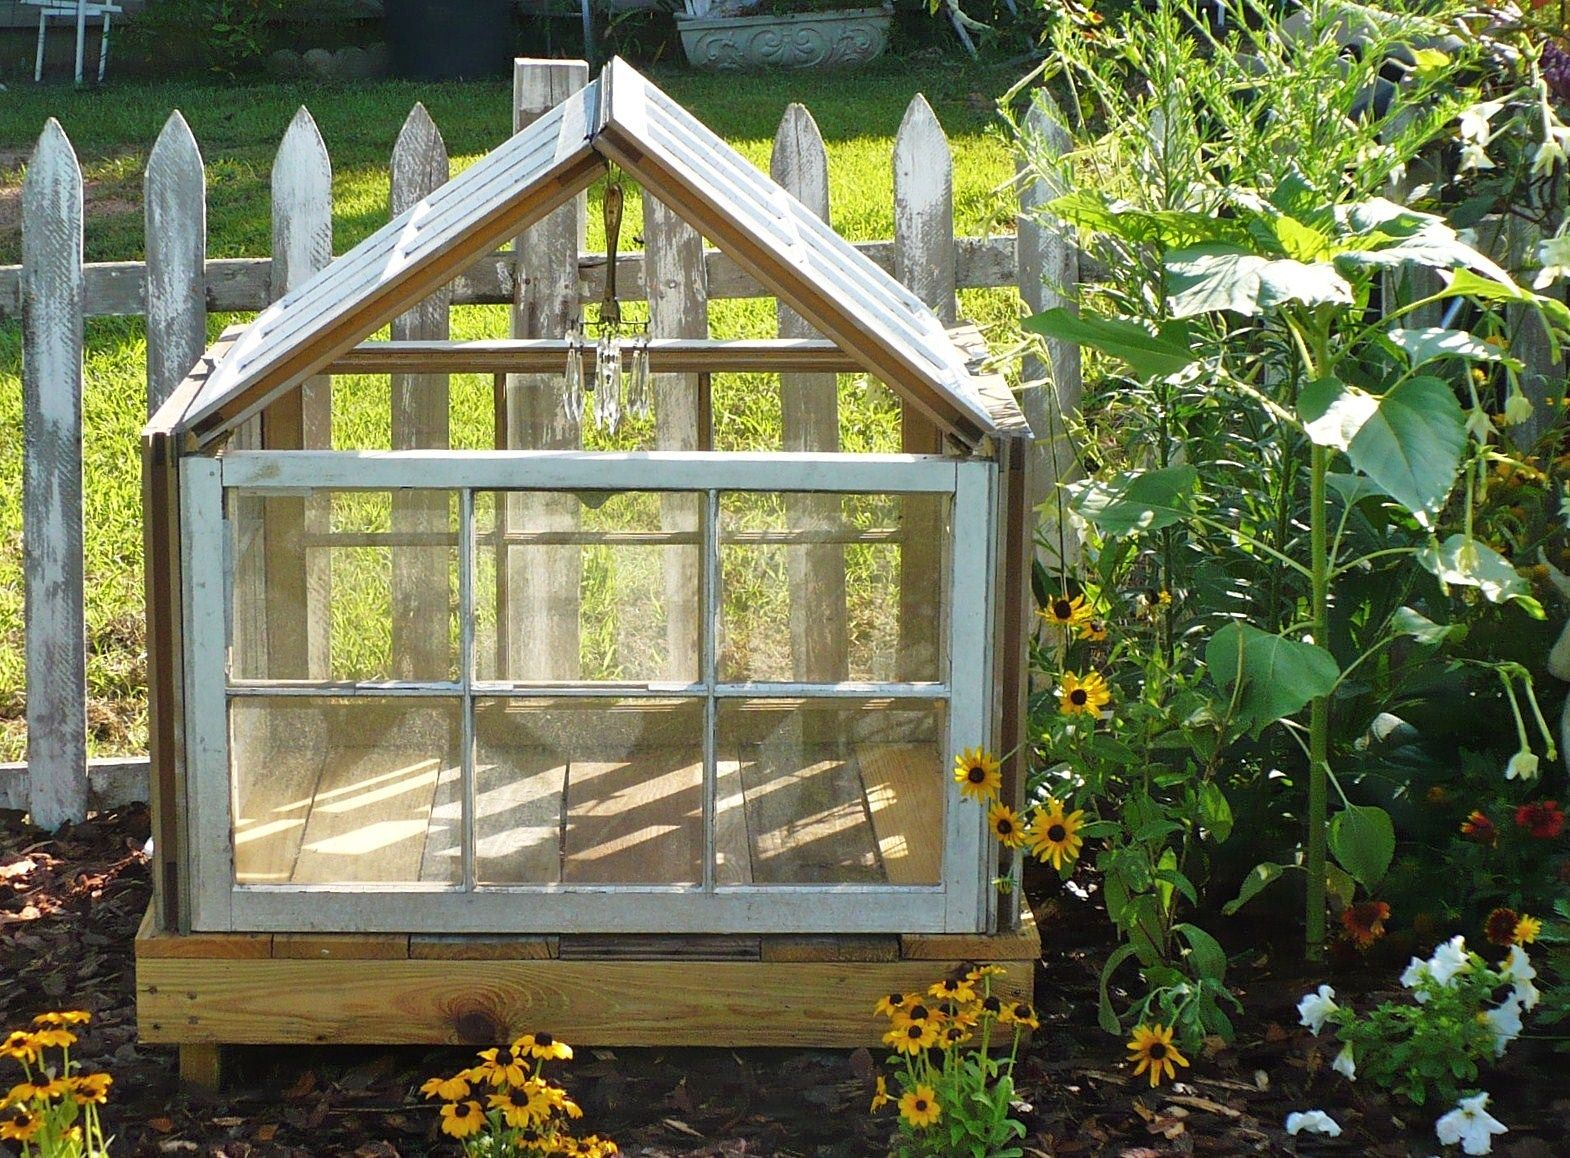 Upcycling Old Windows Into A Pretty Yard Structure   Yards, Mini ...